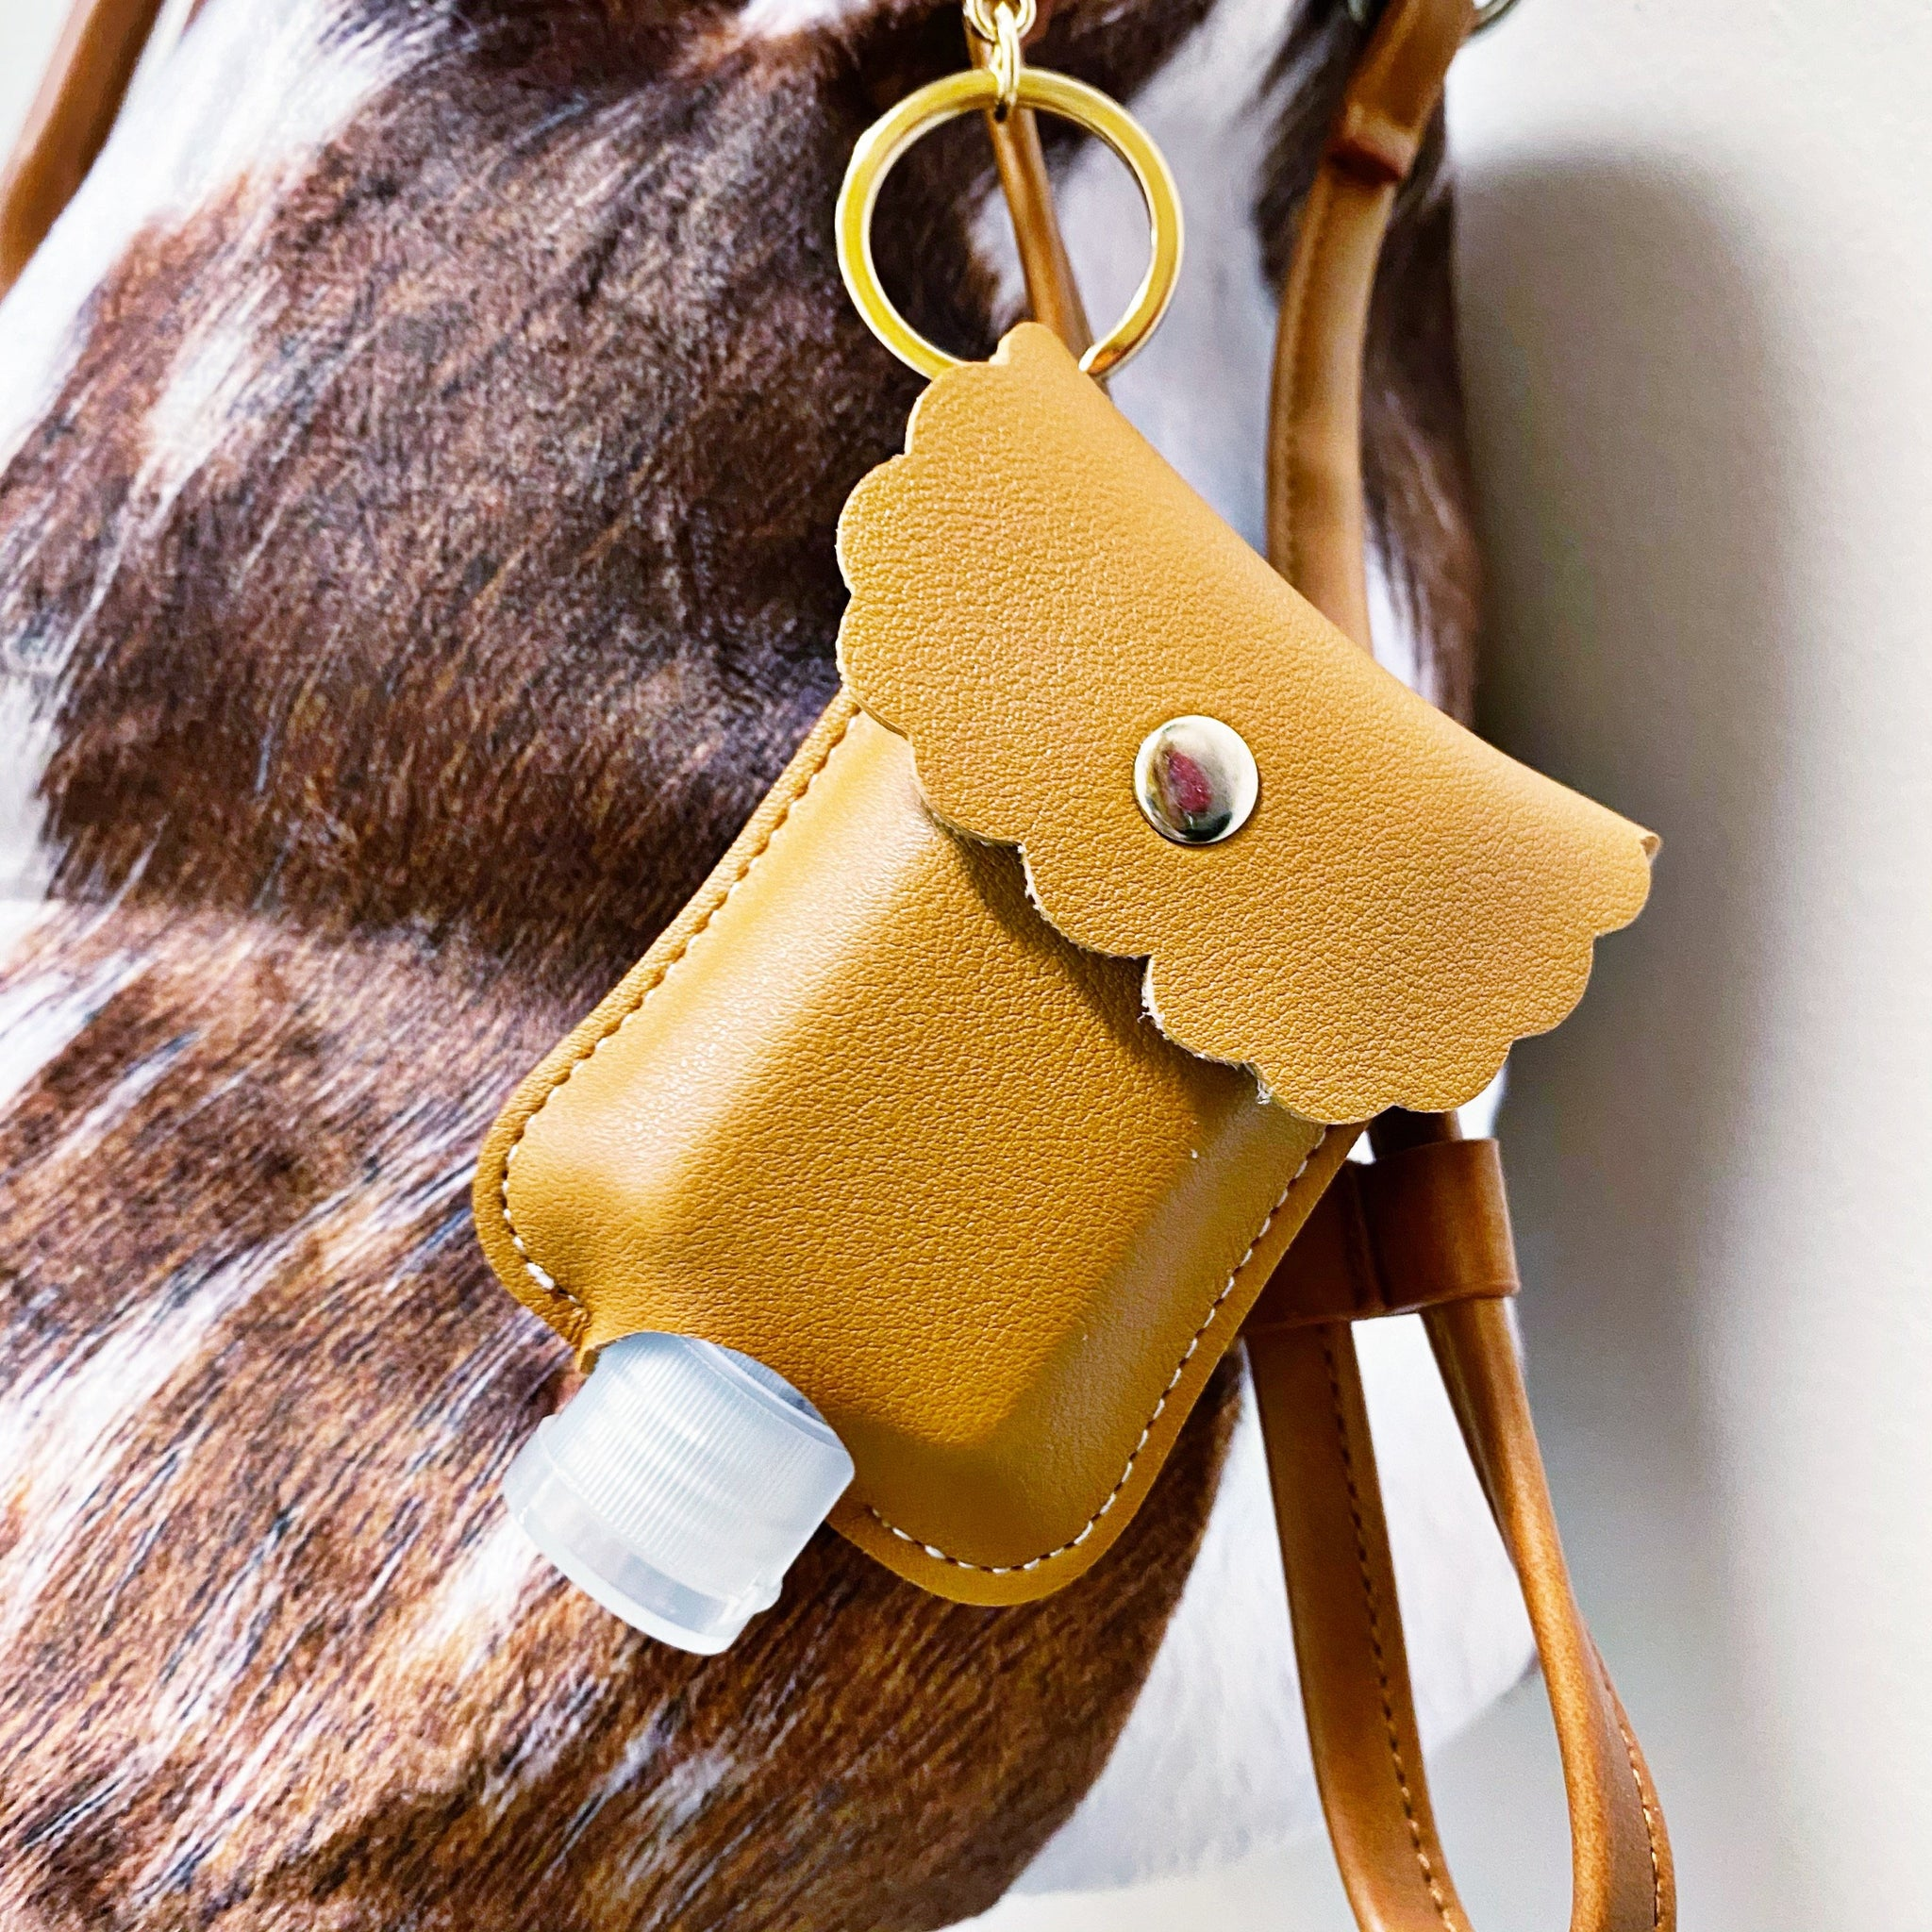 READY TO SHIP * Vegan Leather Hand Sanitizer Holders + Bottle // 5 Colors